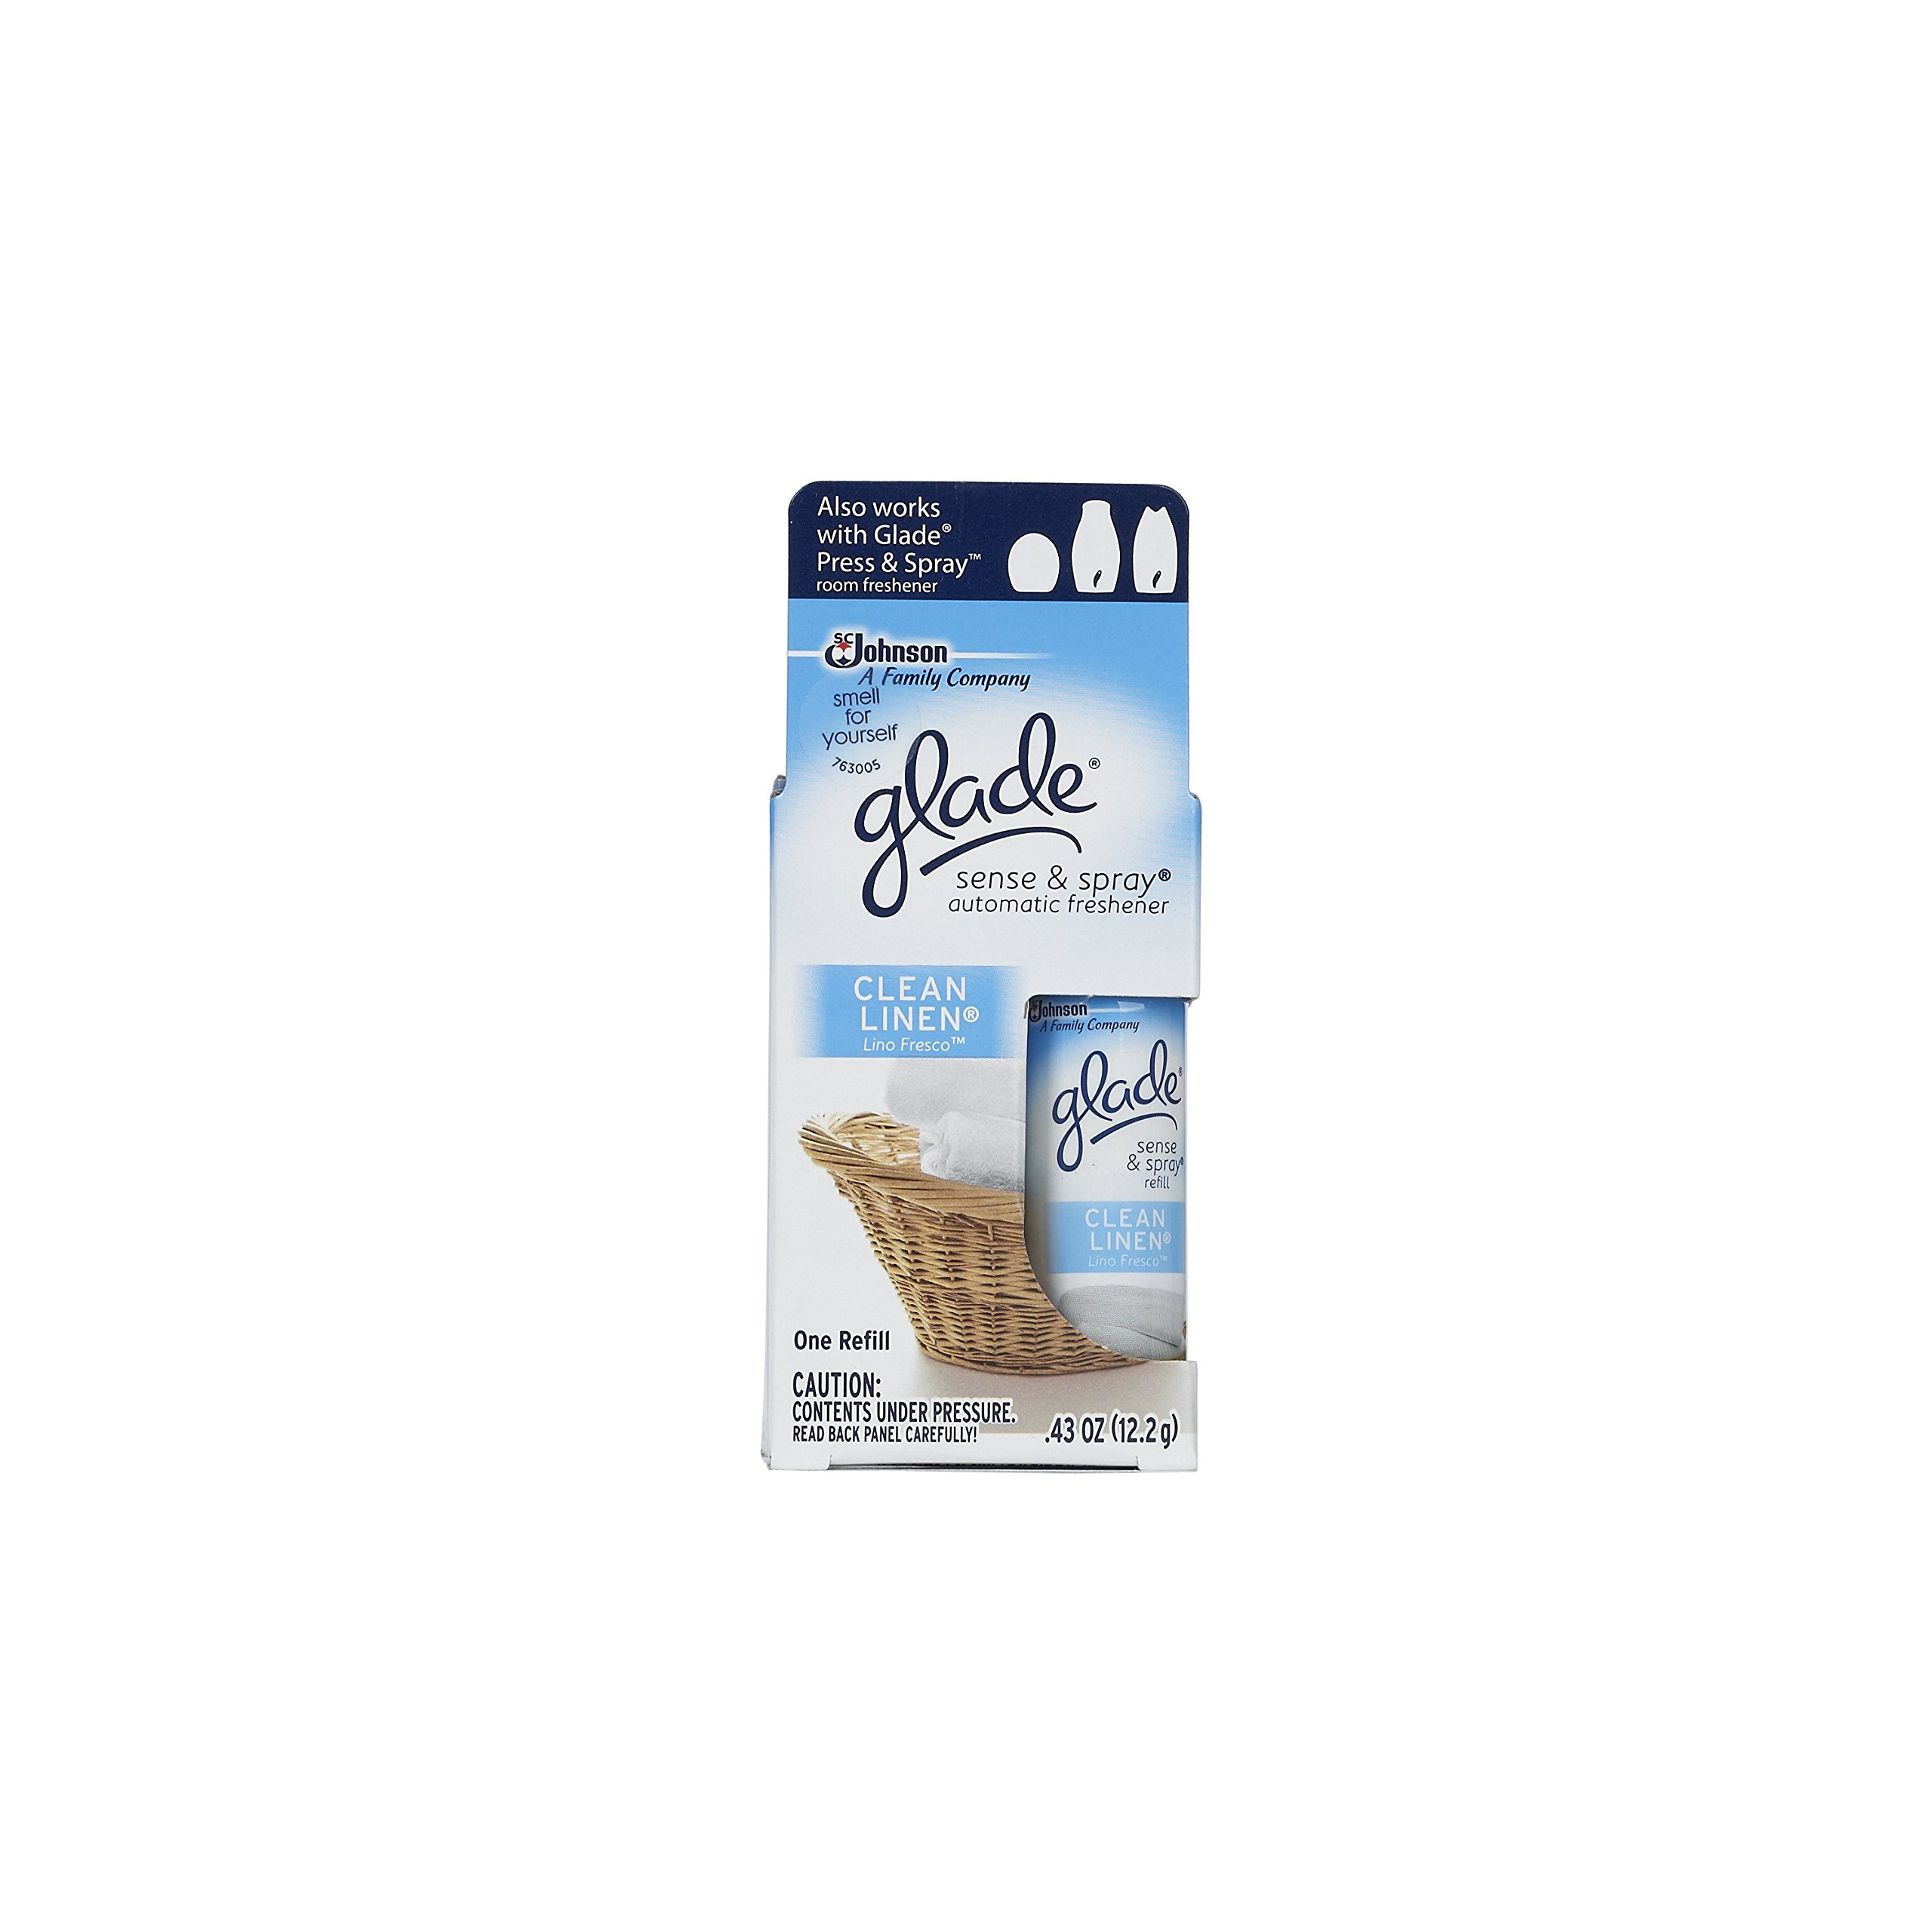 Glade Sense & Spray Automatic Freshener Refill, Clean Linen (Pack of 10) by Glade